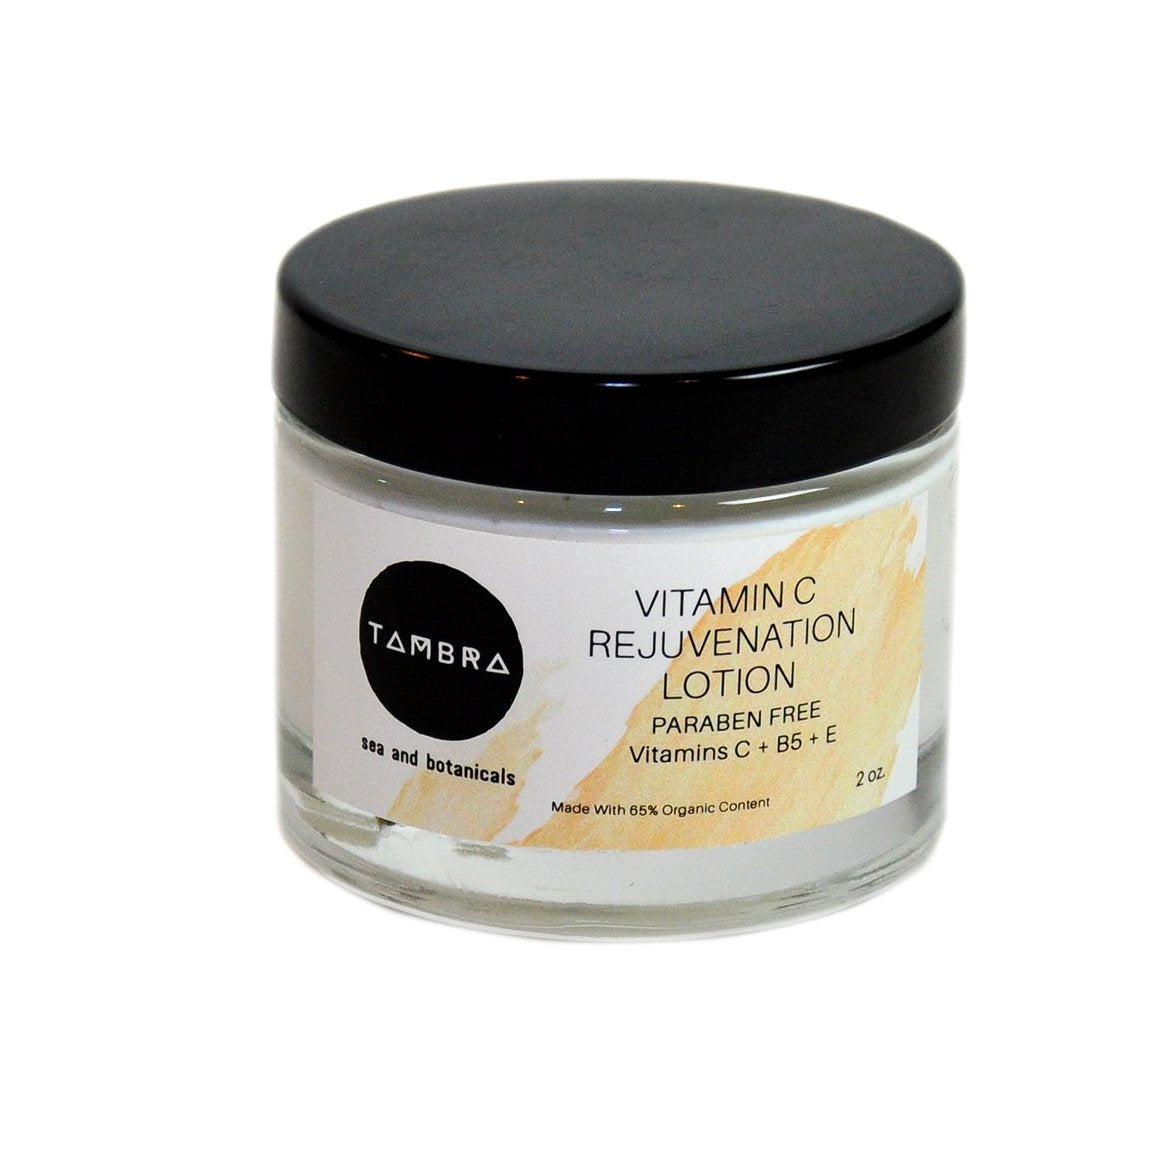 Vitamin C Rejuvenation Lotion